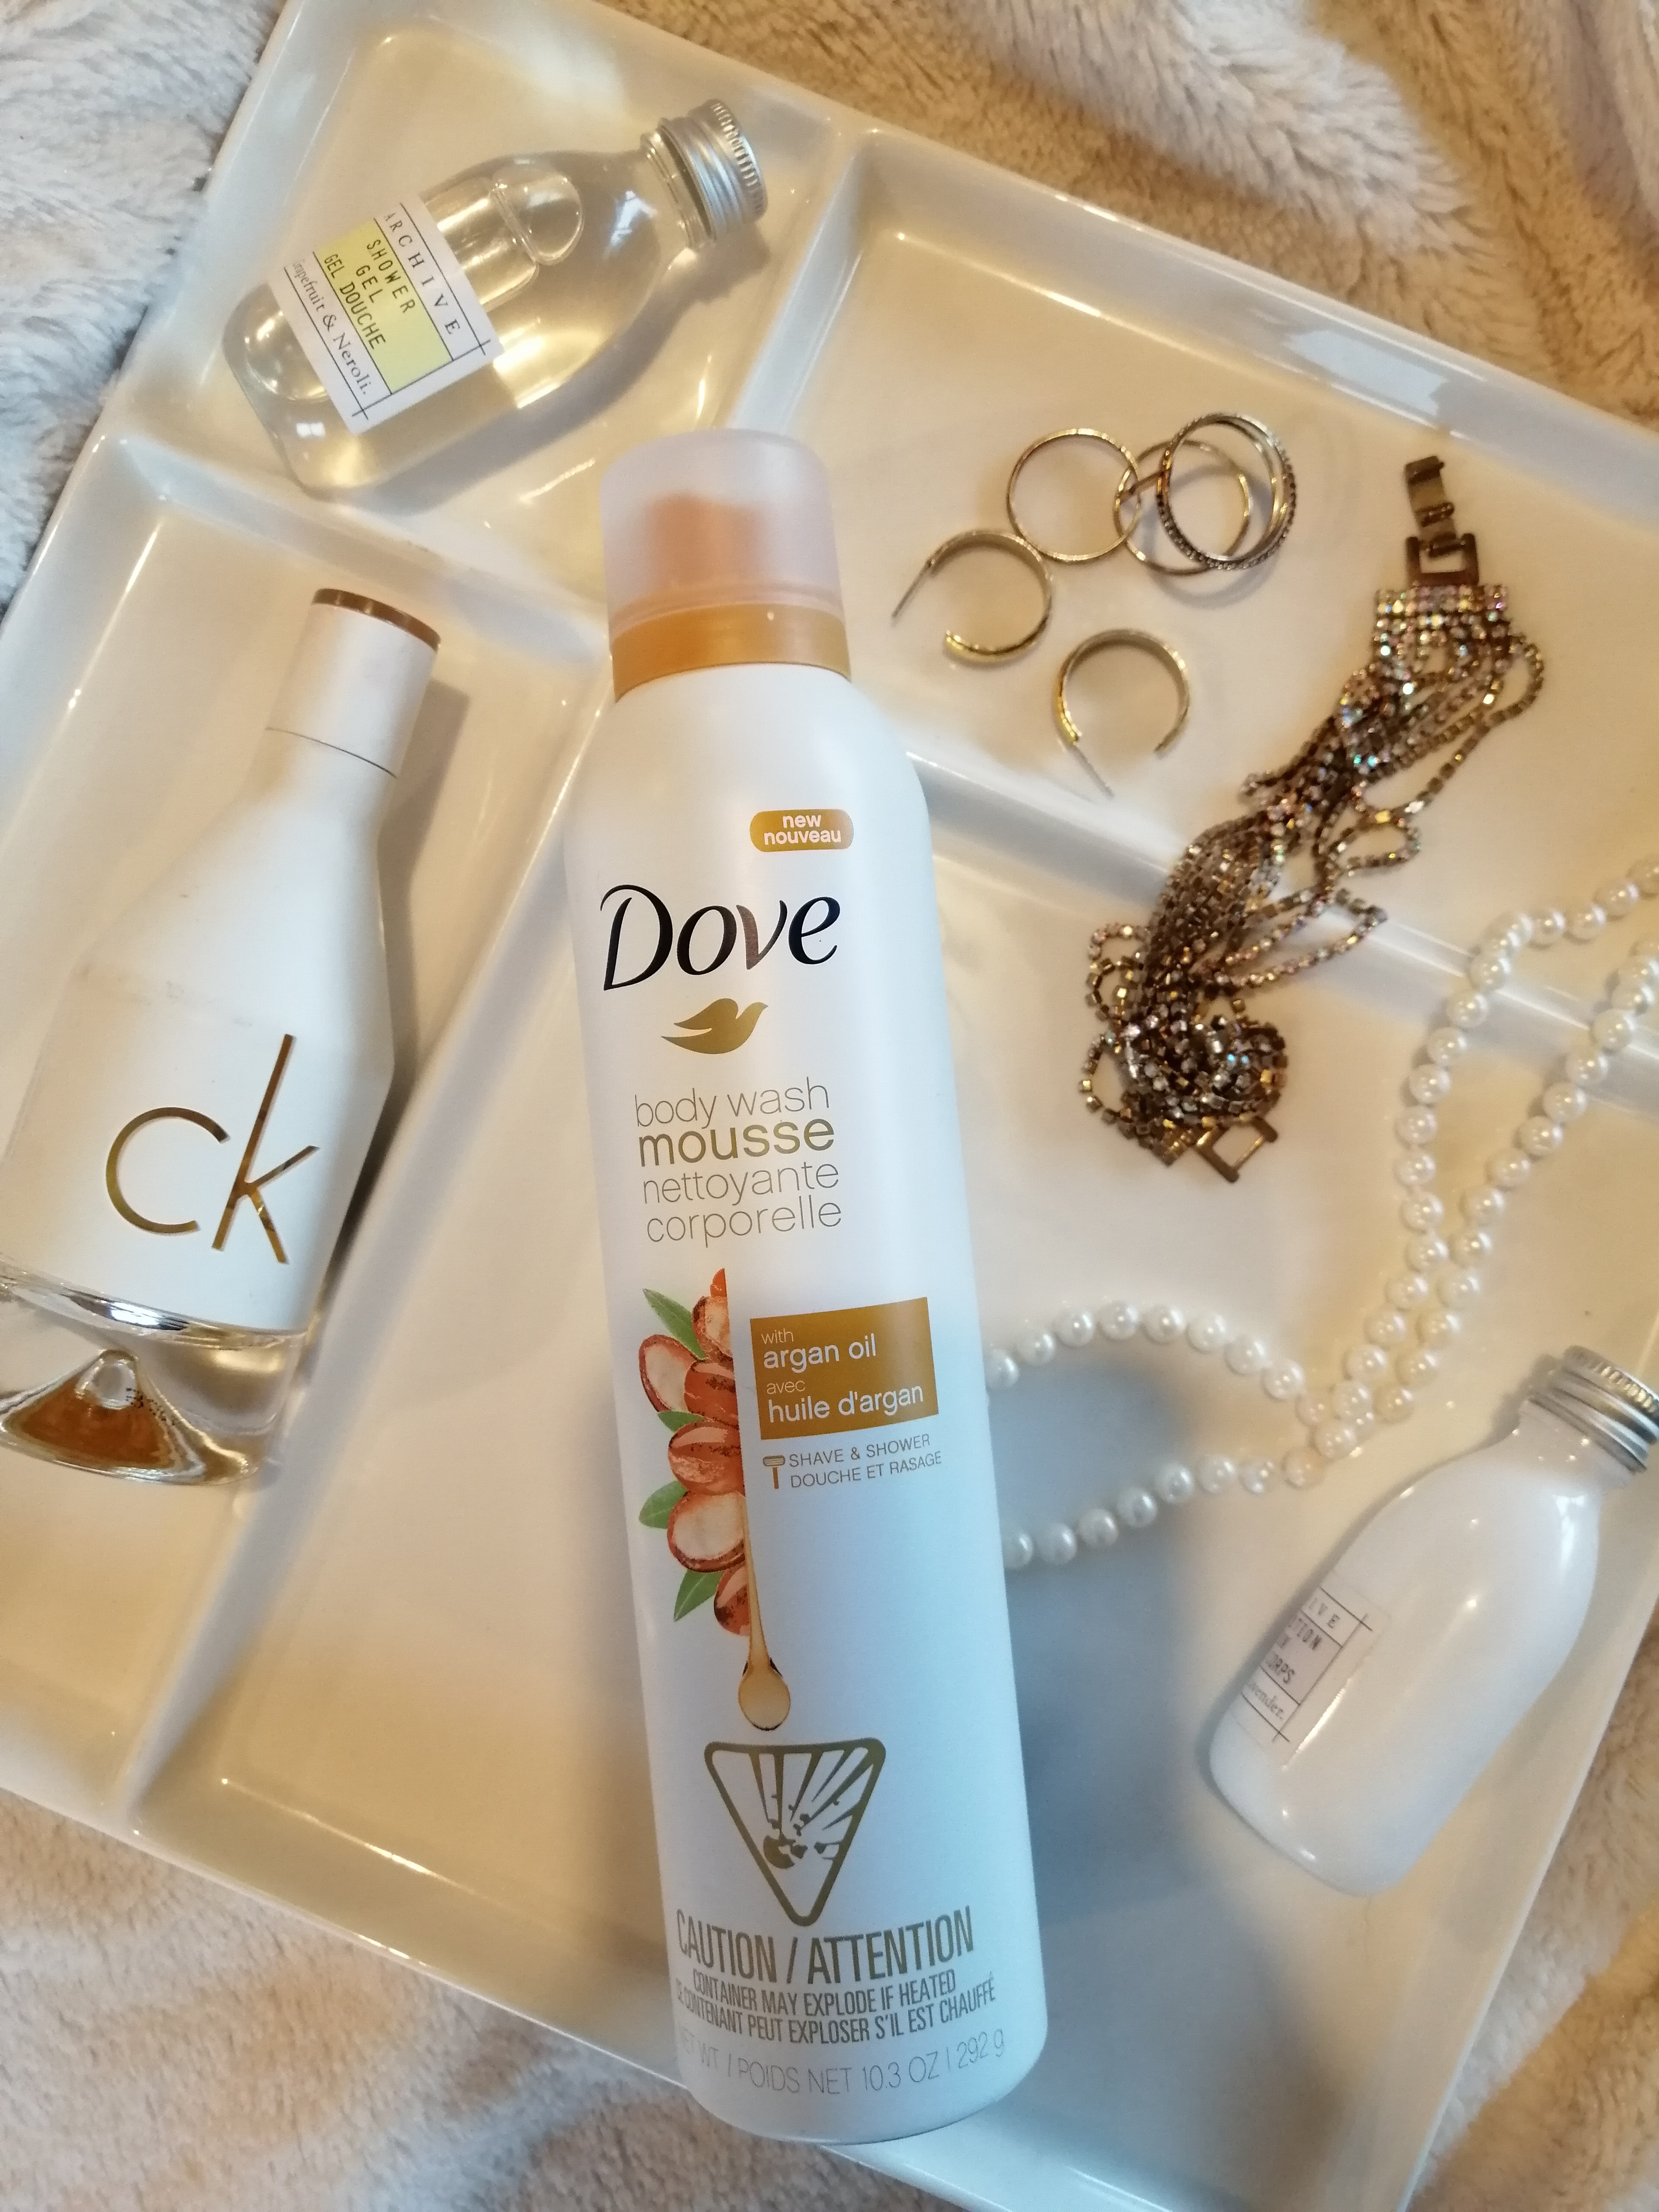 Dove Body Wash Mousse With Argan Oil Reviews In Body Wash Shower Gel Chickadvisor